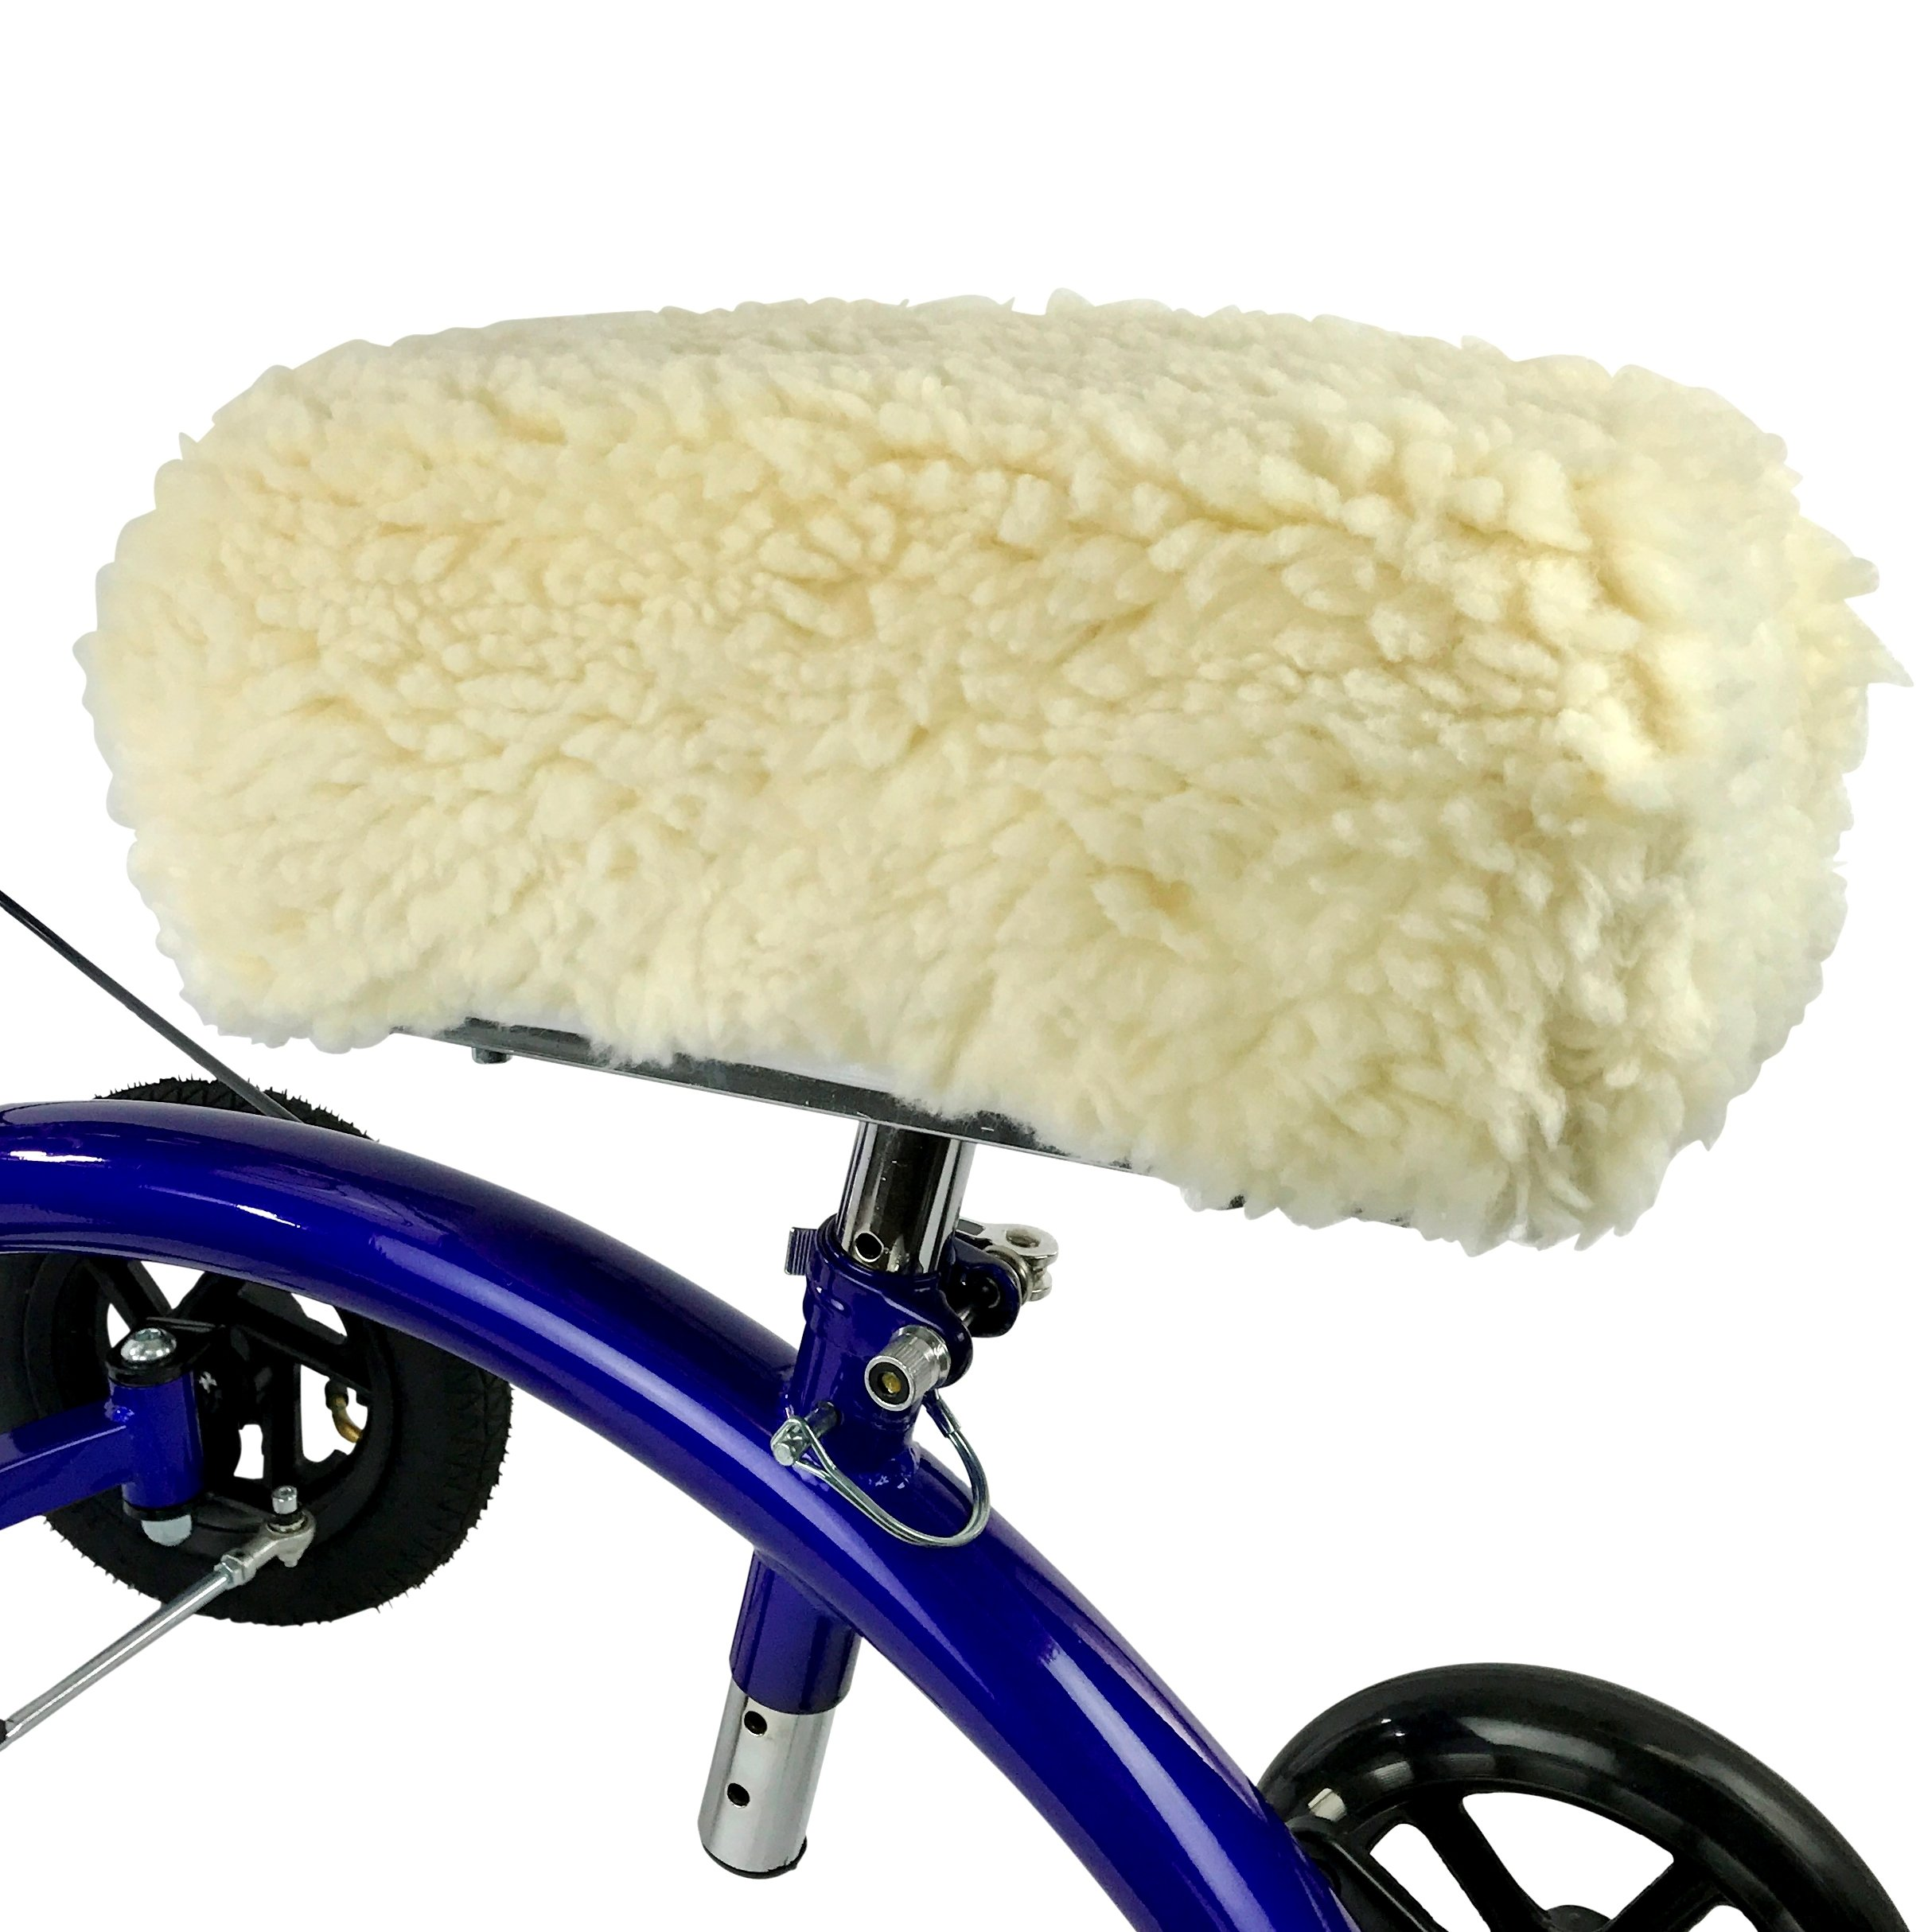 KneeRover Deluxe Synthetic Sheepskin Knee Walker Kneepad Cover with Thick Comfortable Padding by KneeRover